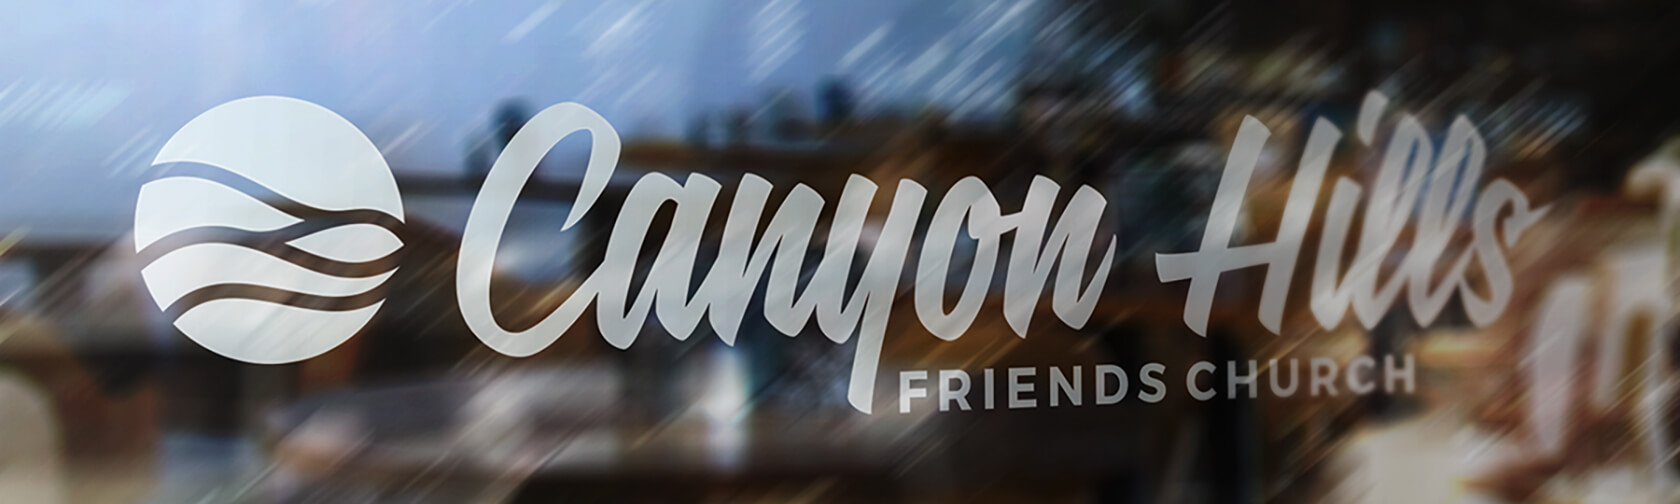 Contact Canyon Hills Friends Church